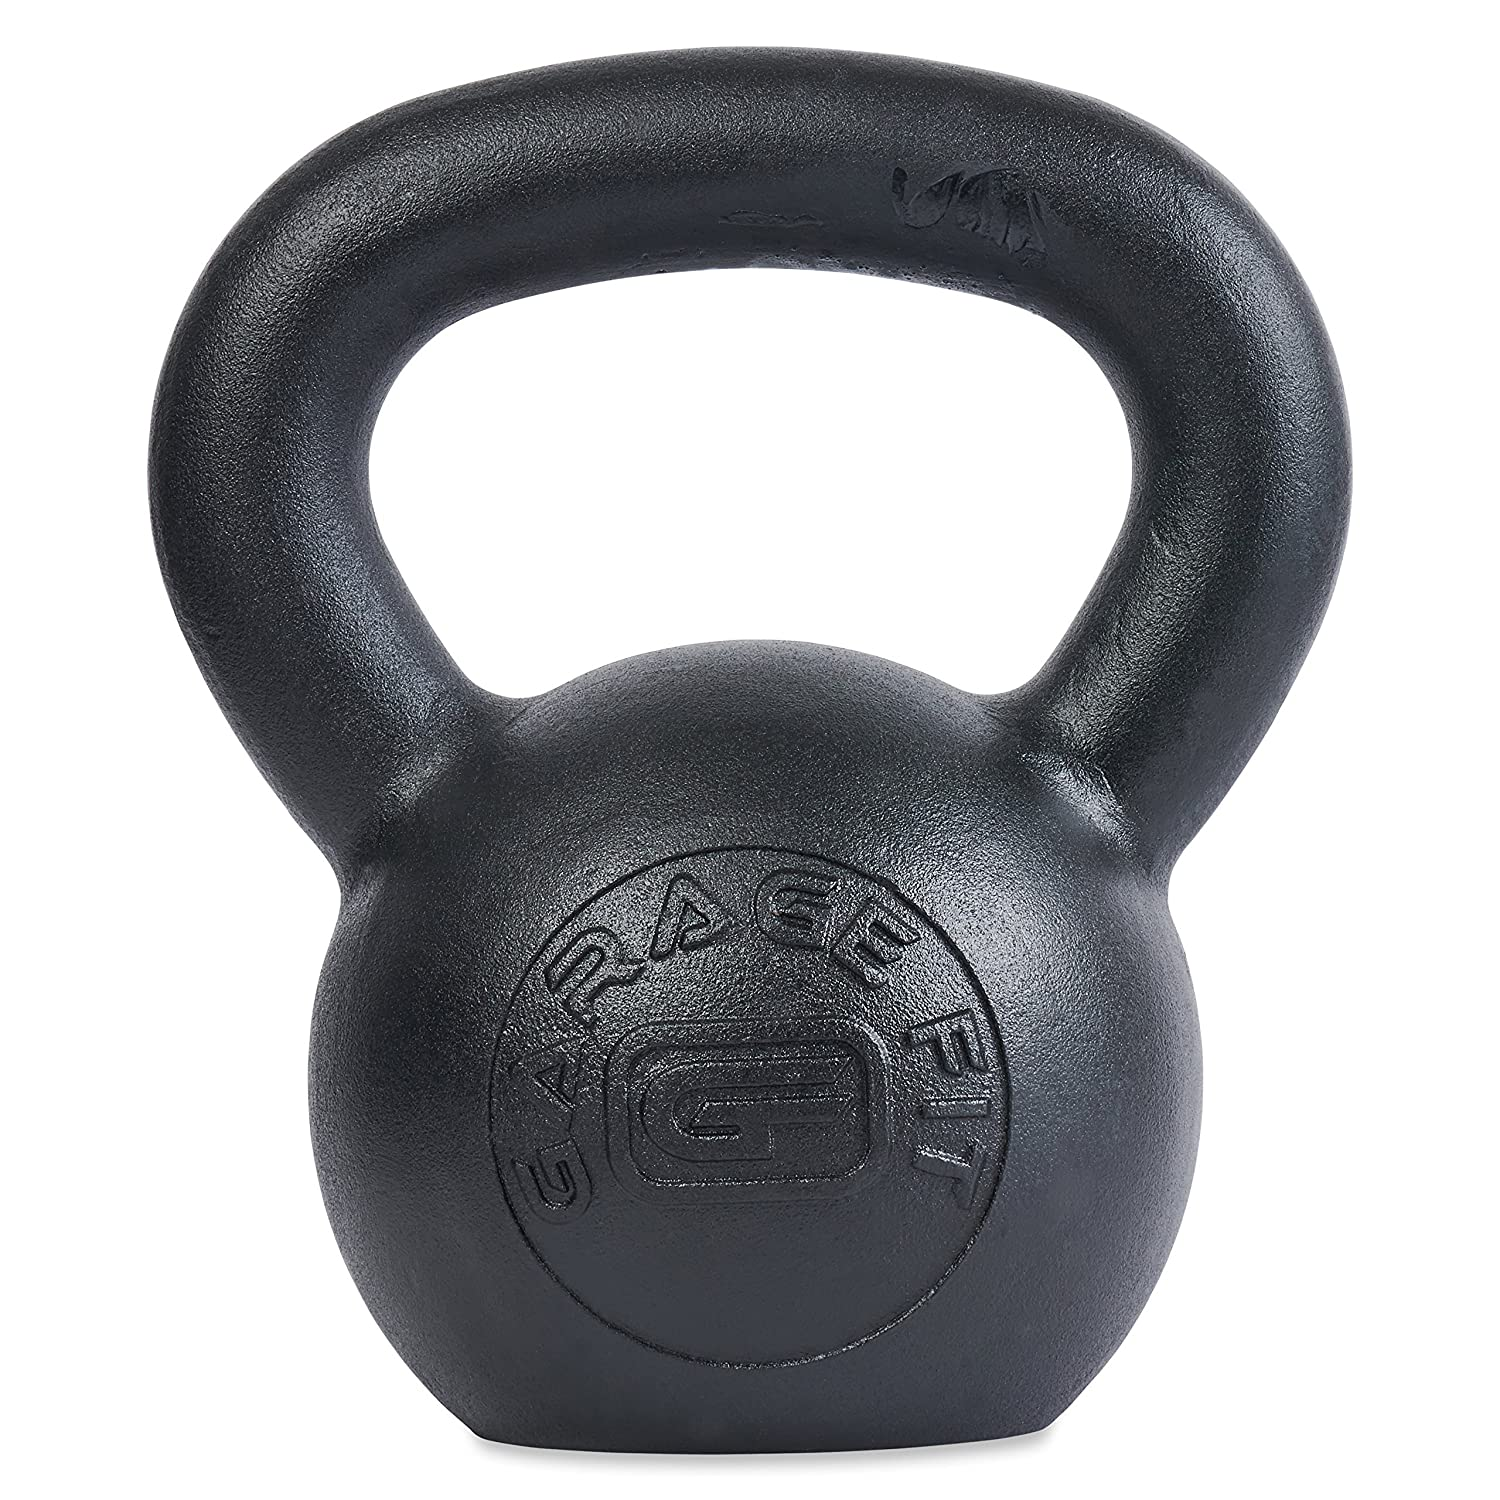 Amazon garage fit powder coated kettlebells with lb and kg